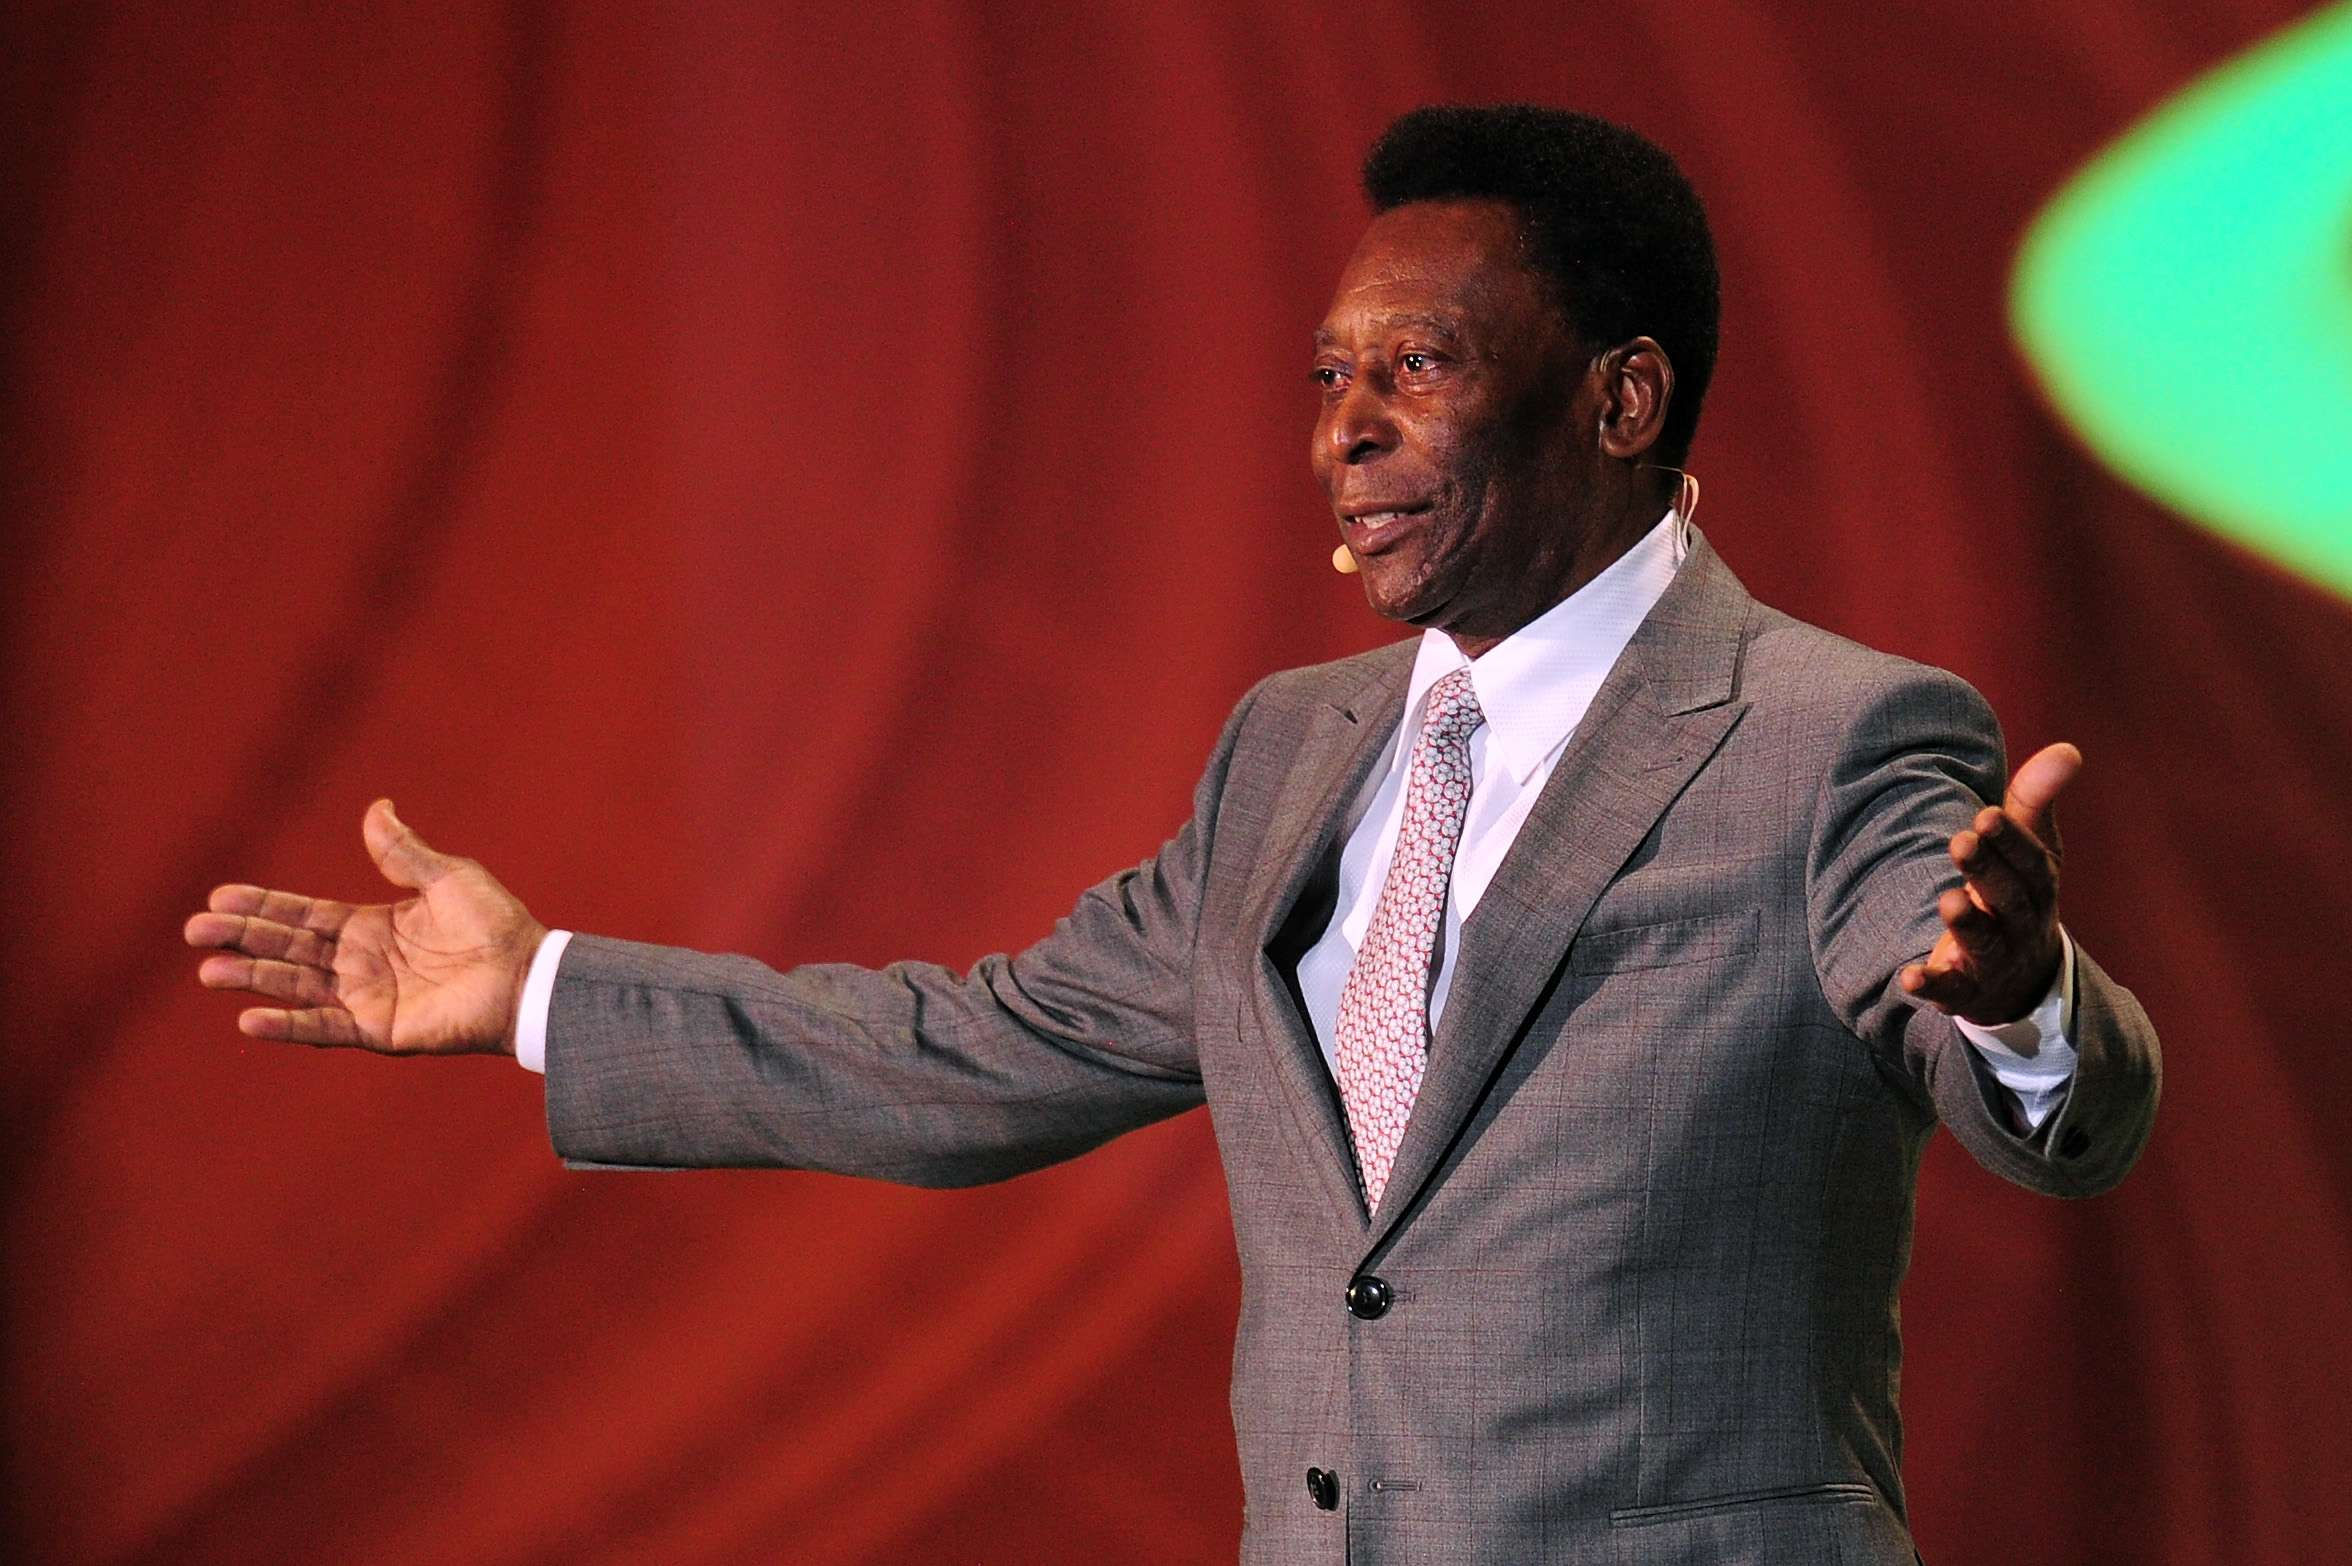 2013 - Pelé participa do sorteio da Copa do Mundo de 2014 Foto: Shaun Botterill/Getty Images